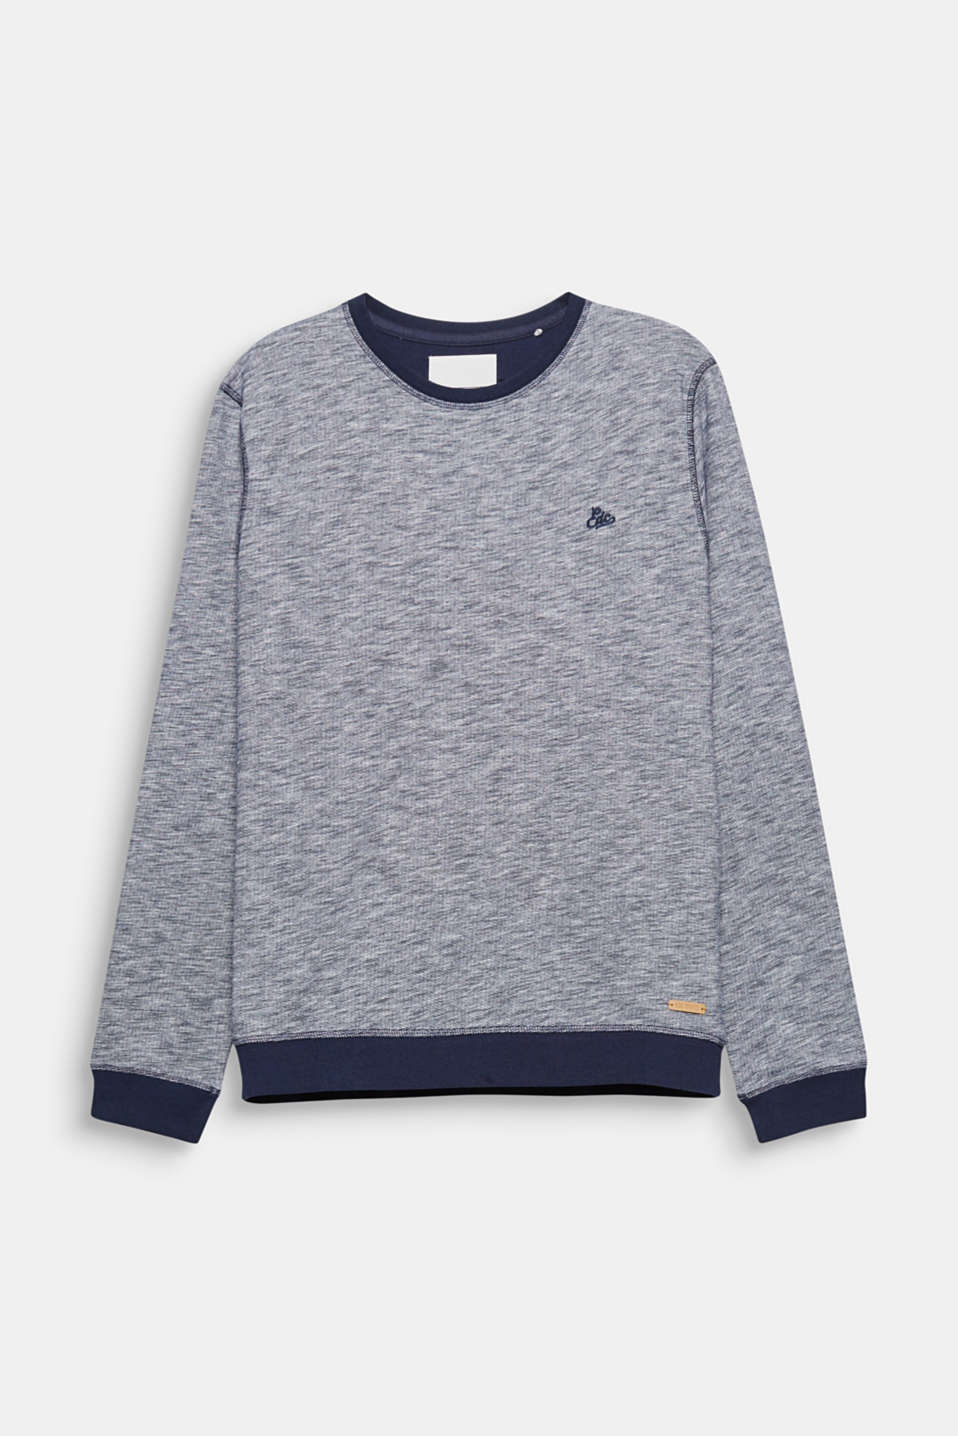 A sporty essential for your EDC look: melange, blended cotton sweatshirt.